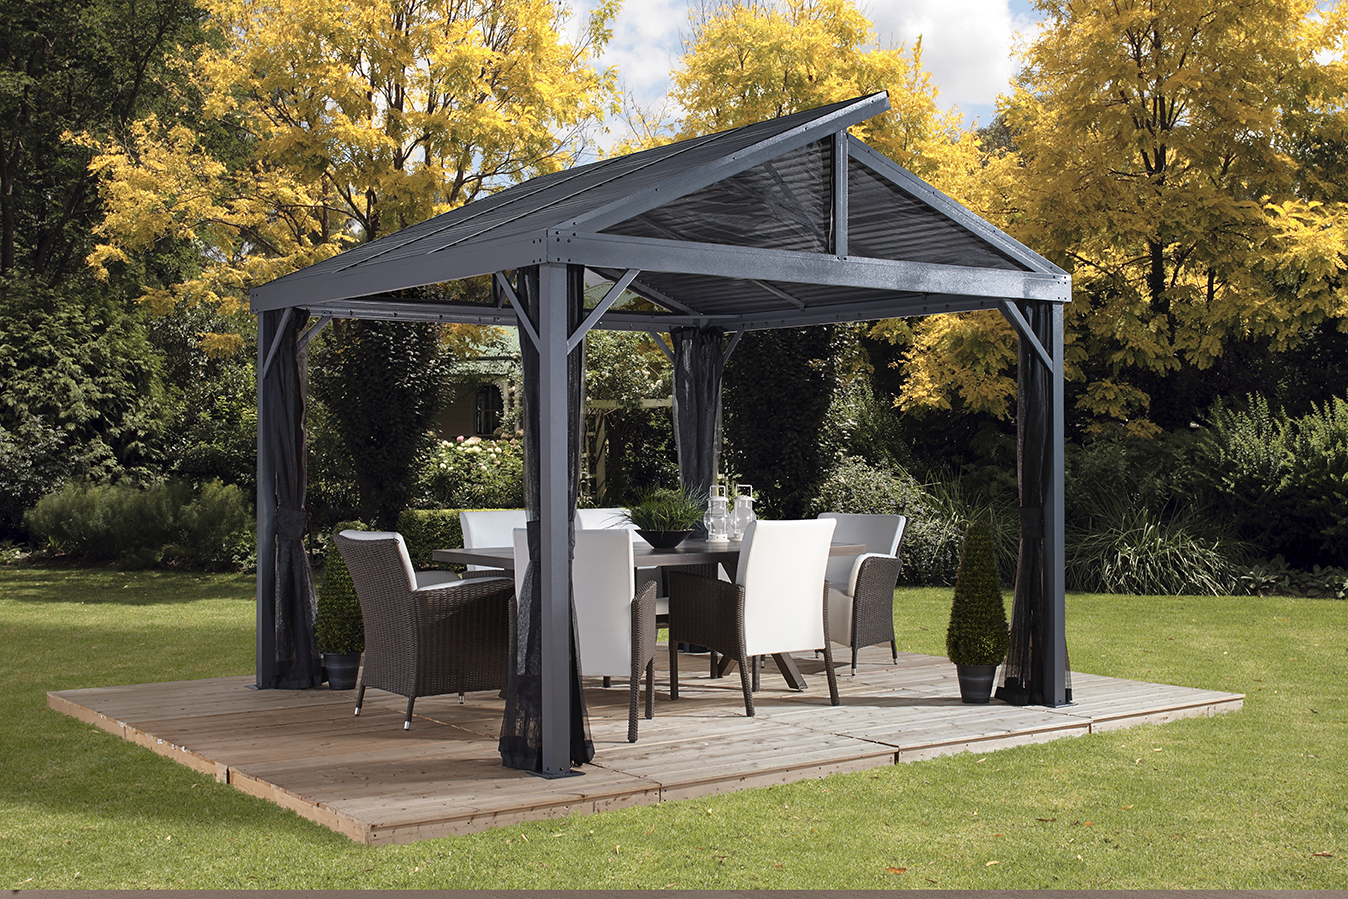 Sojag SANIBEL II 10x10 Gazebo, galvanised steel roof & mosquito netting by SOJAG